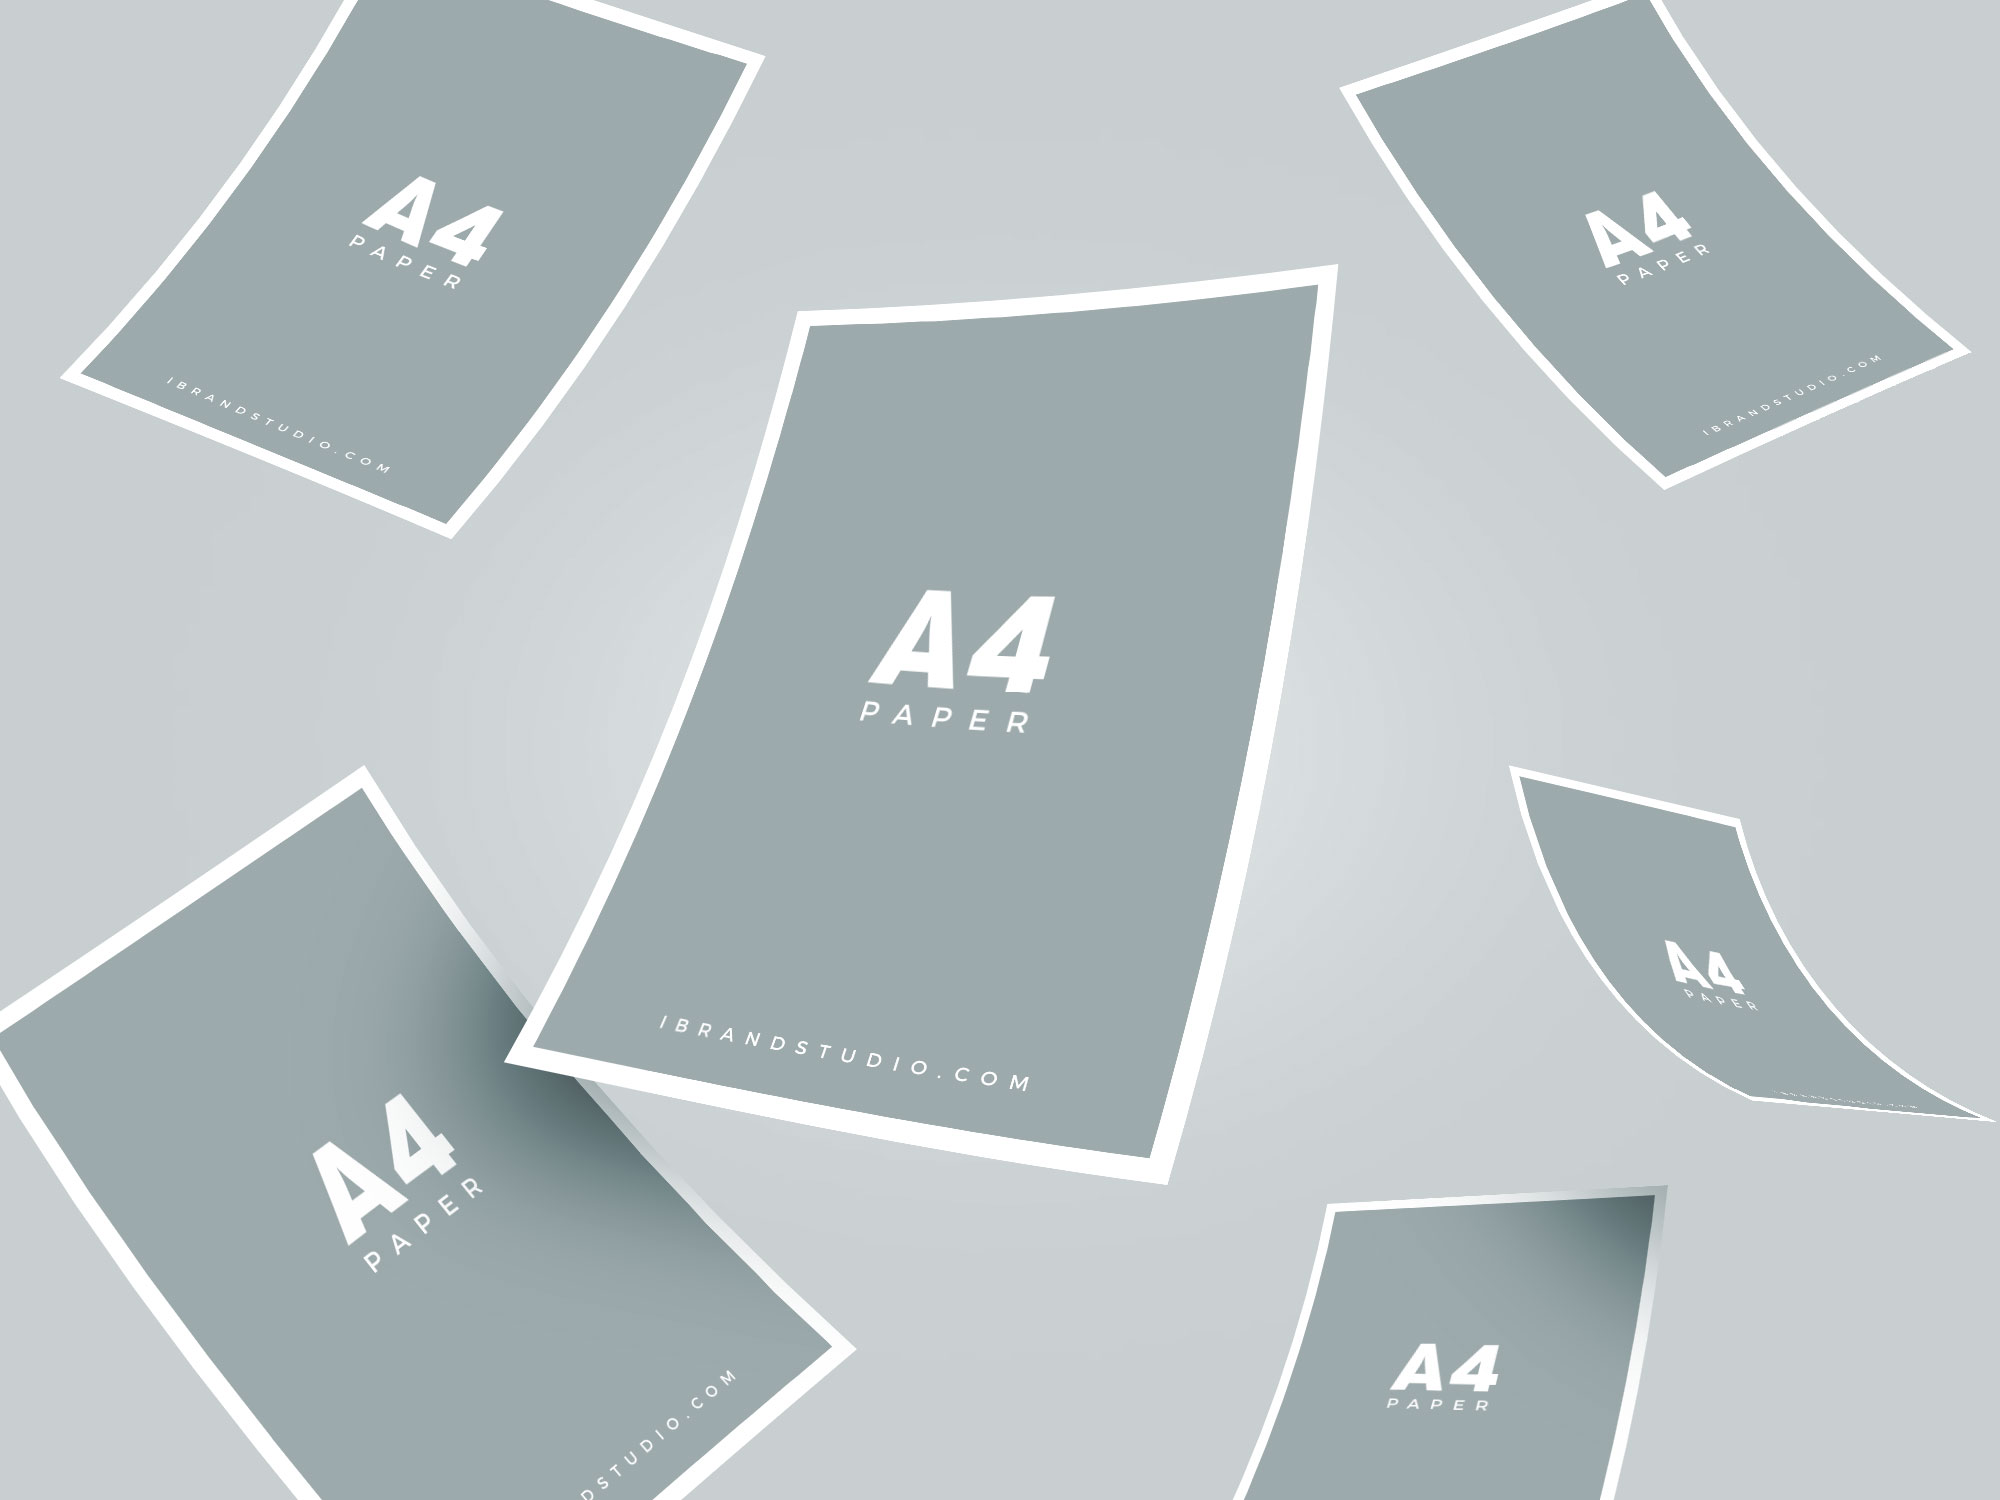 Free-Floating-A4-Paper-Mockup-04